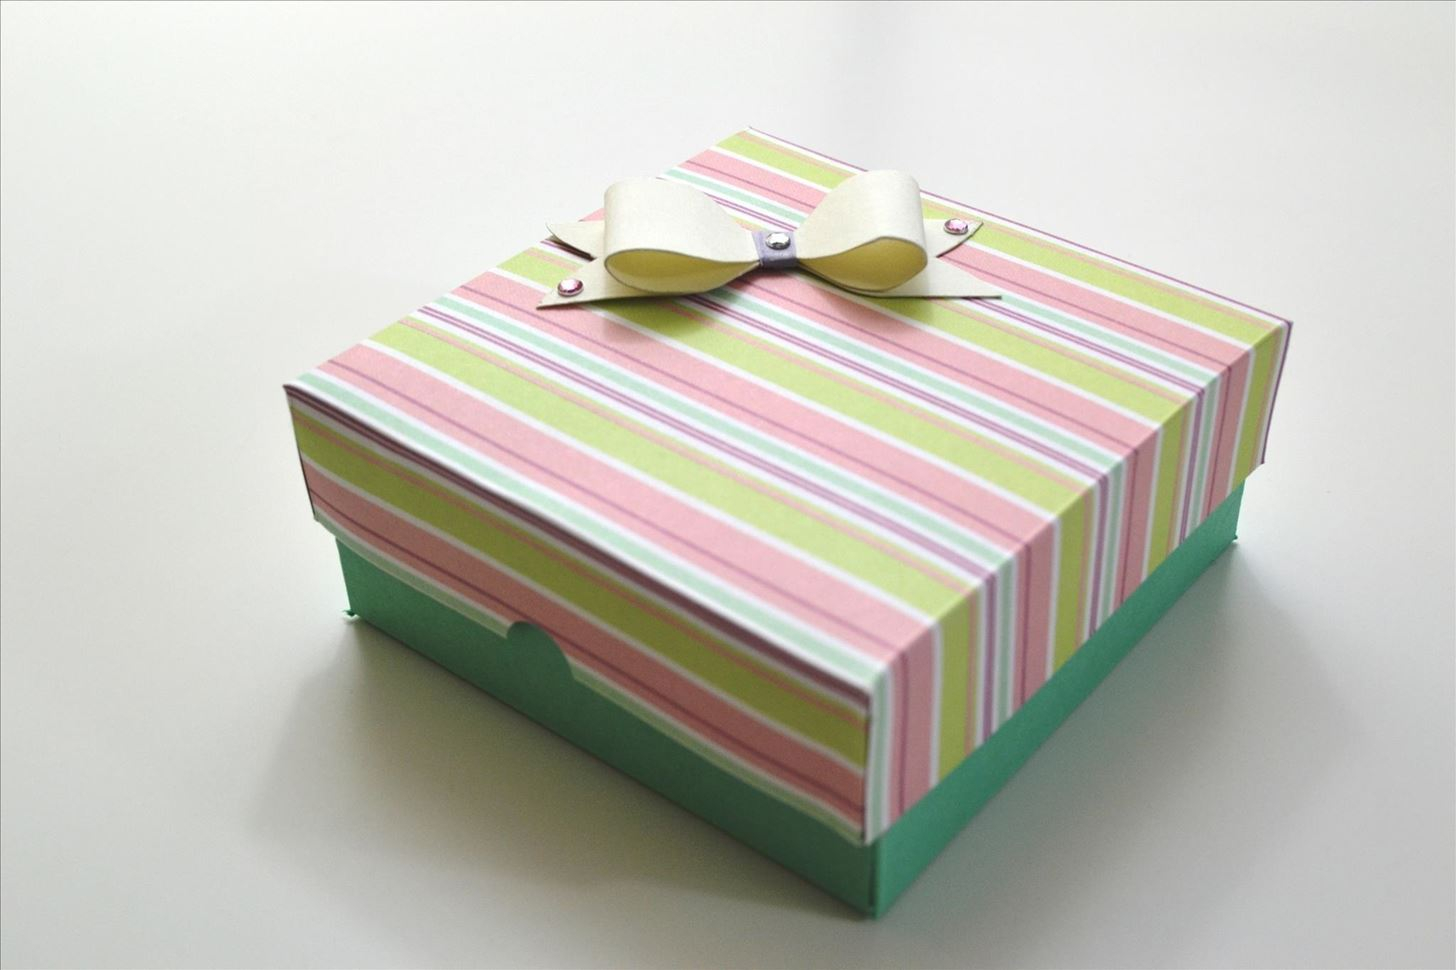 Handmade Paper Craft Gifts You can Make Right Now How To Make An Easy Paper Box Valentines Day Gift Diy Crafts